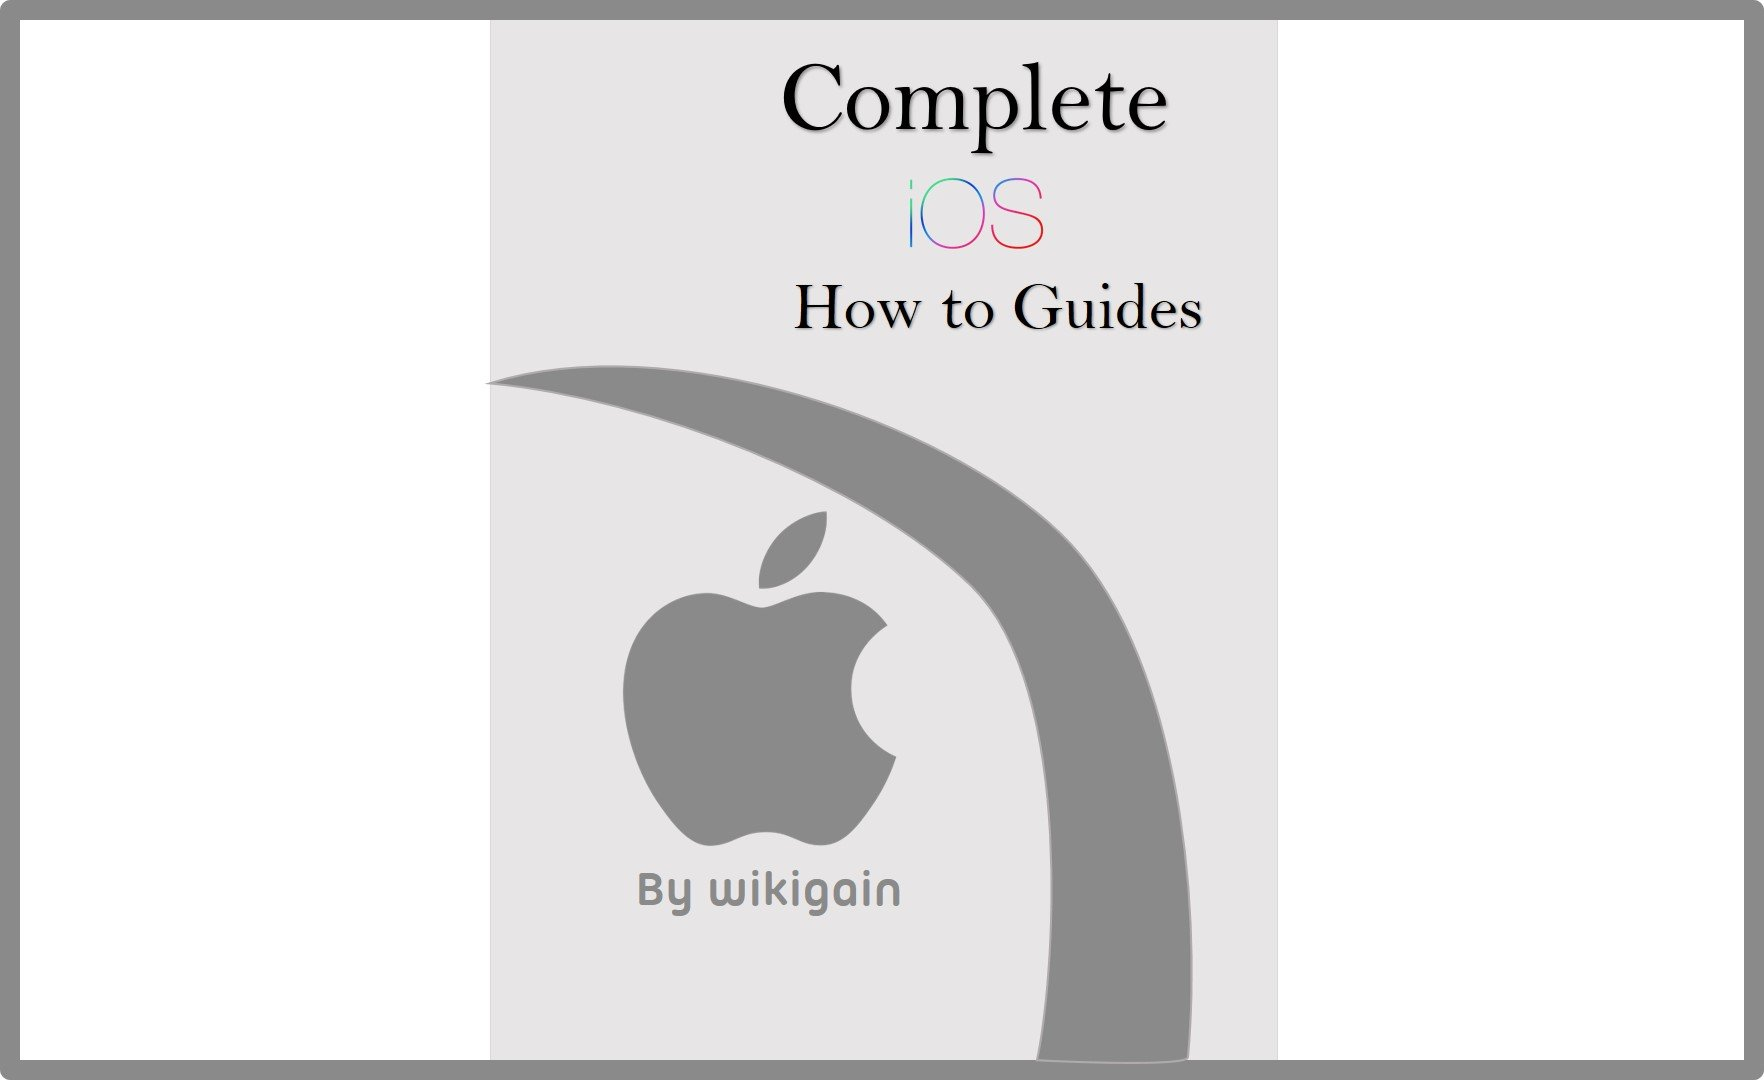 Complete iOS How-To Guides for Beginners